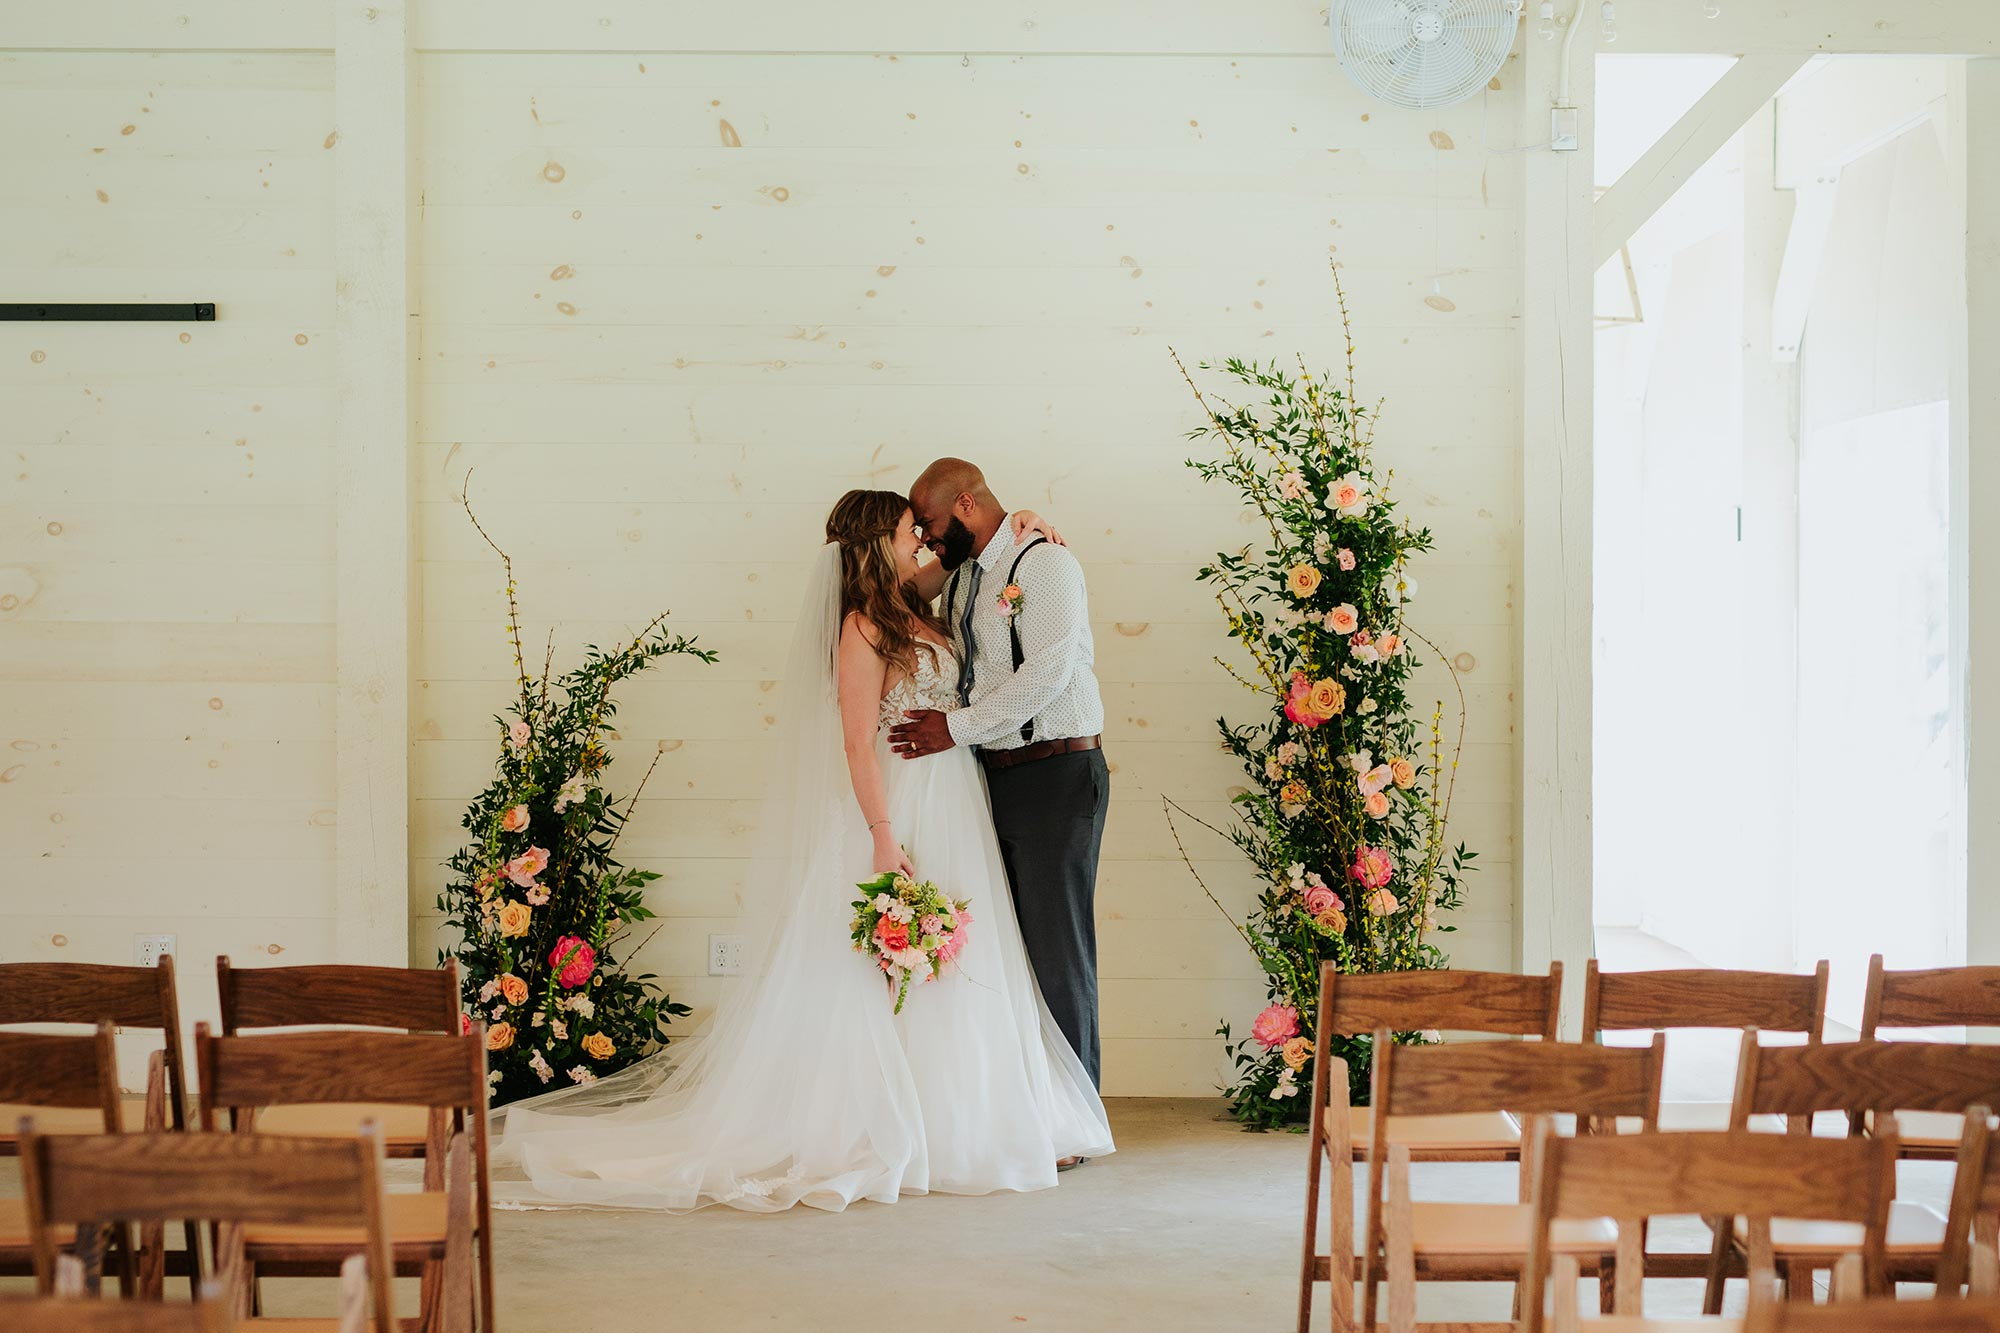 Lush wedding inspiration at Seven Springs VA with bride and groom during ceremony Carly Romeo & Co.